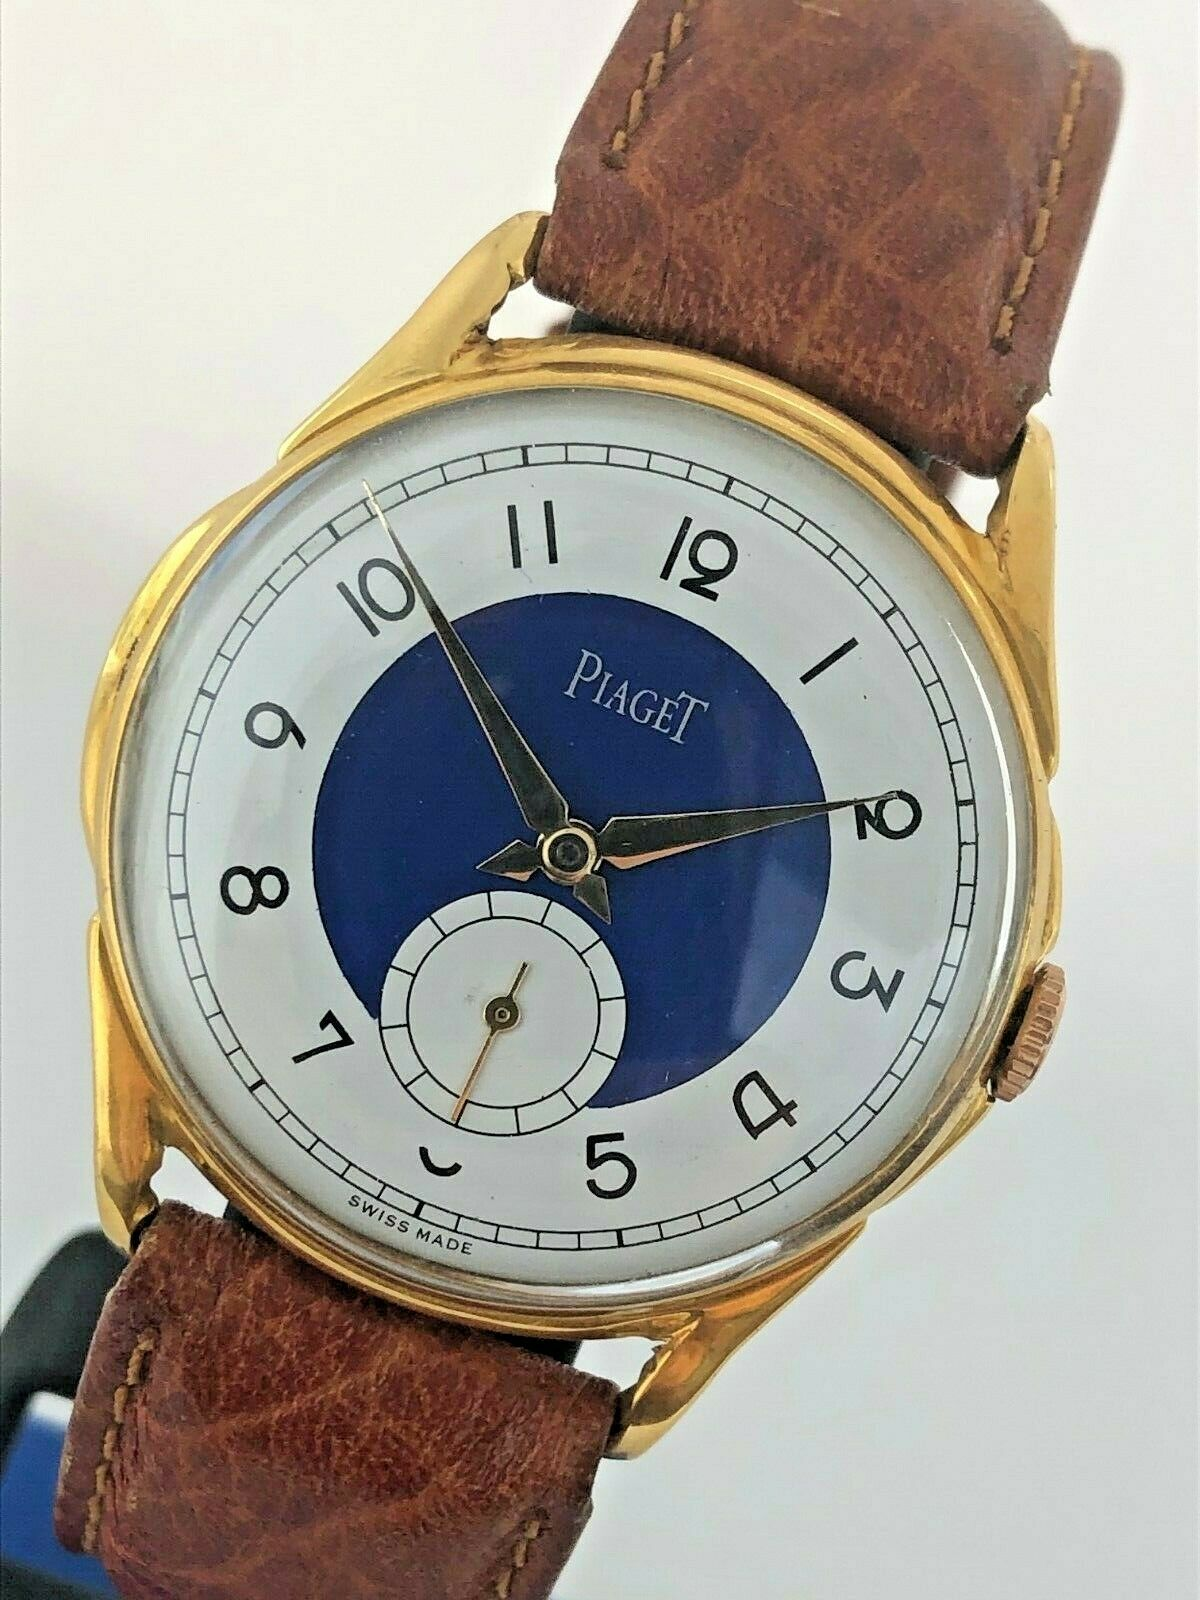 Swiss Vintage Piaget 2 Tone 18k Gold Filled Manual Wind Watch Jumbo 37mm